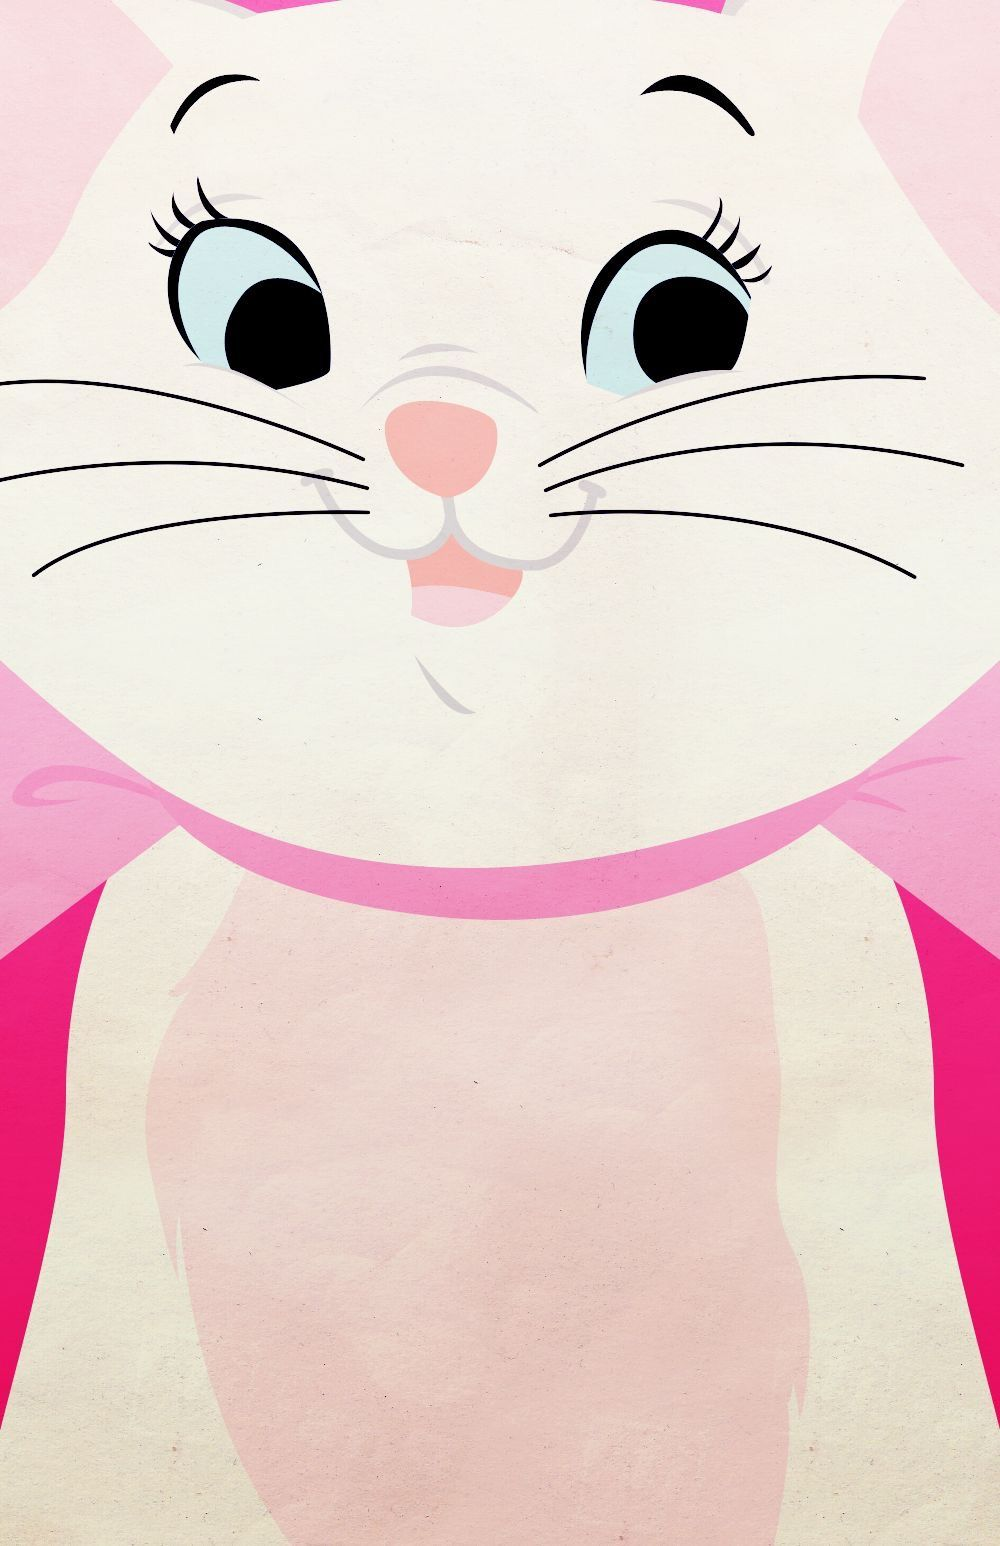 Disney Wallpaper Aristocats Marie | iPhone Wallpapers & Themes …